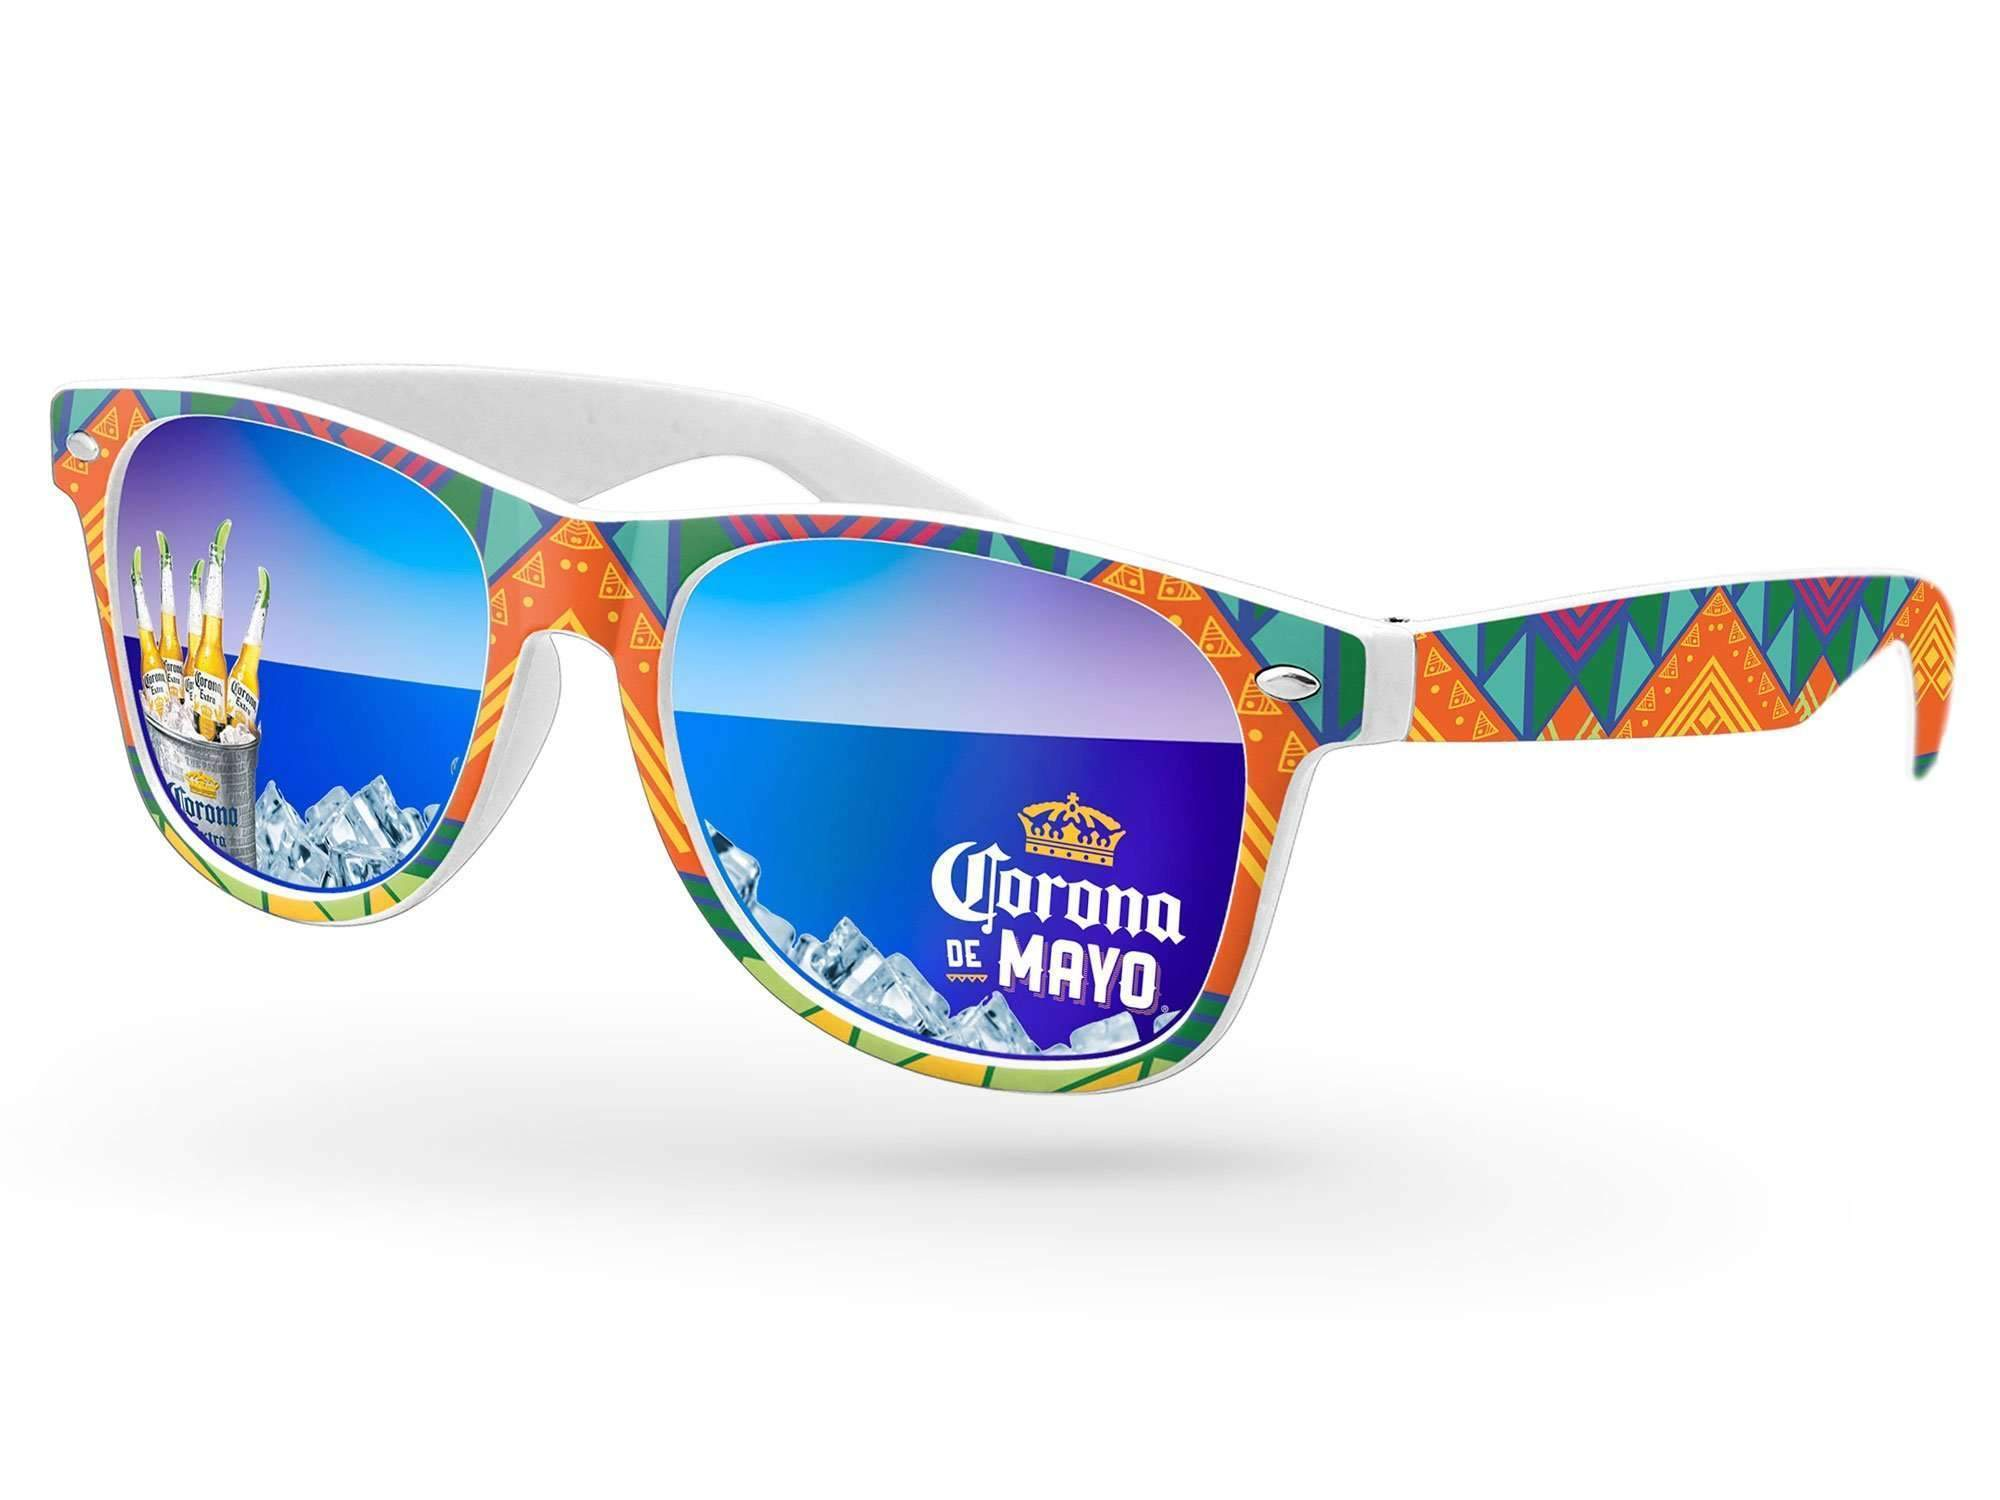 Retro Mirror Promotional Sunglasses w/ full-color lens imprints & full-color full-frame heat transfer